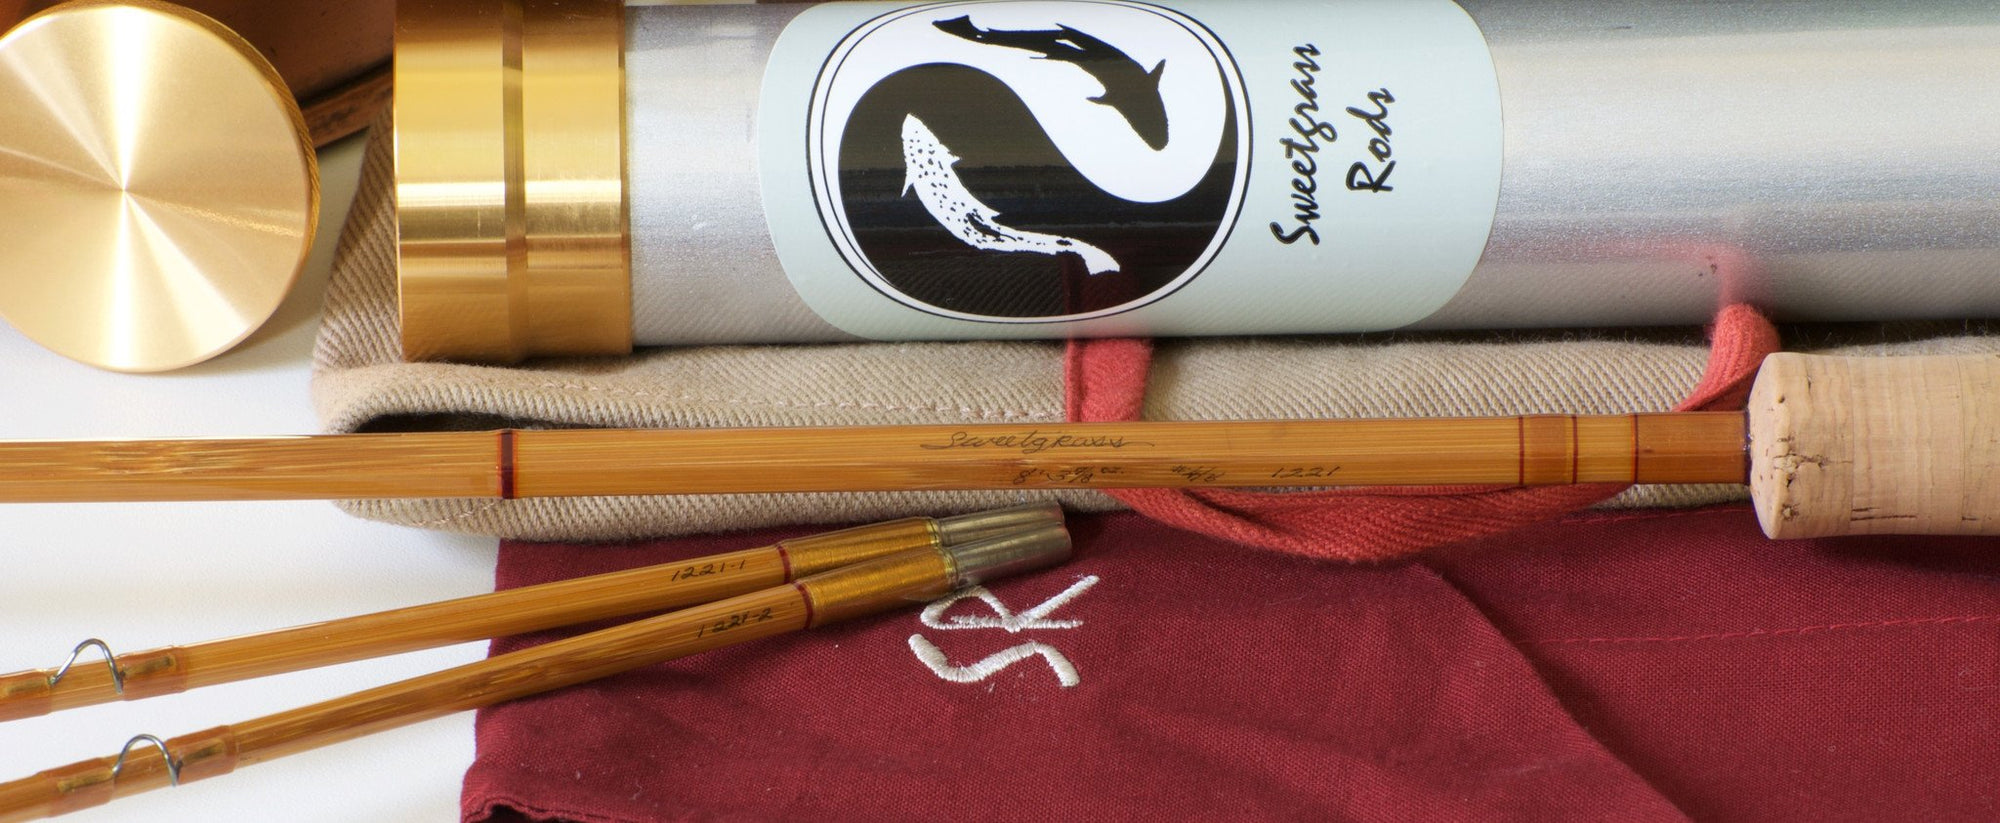 Sweetgrass Bamboo Rod 8' 4-5wt 2/2